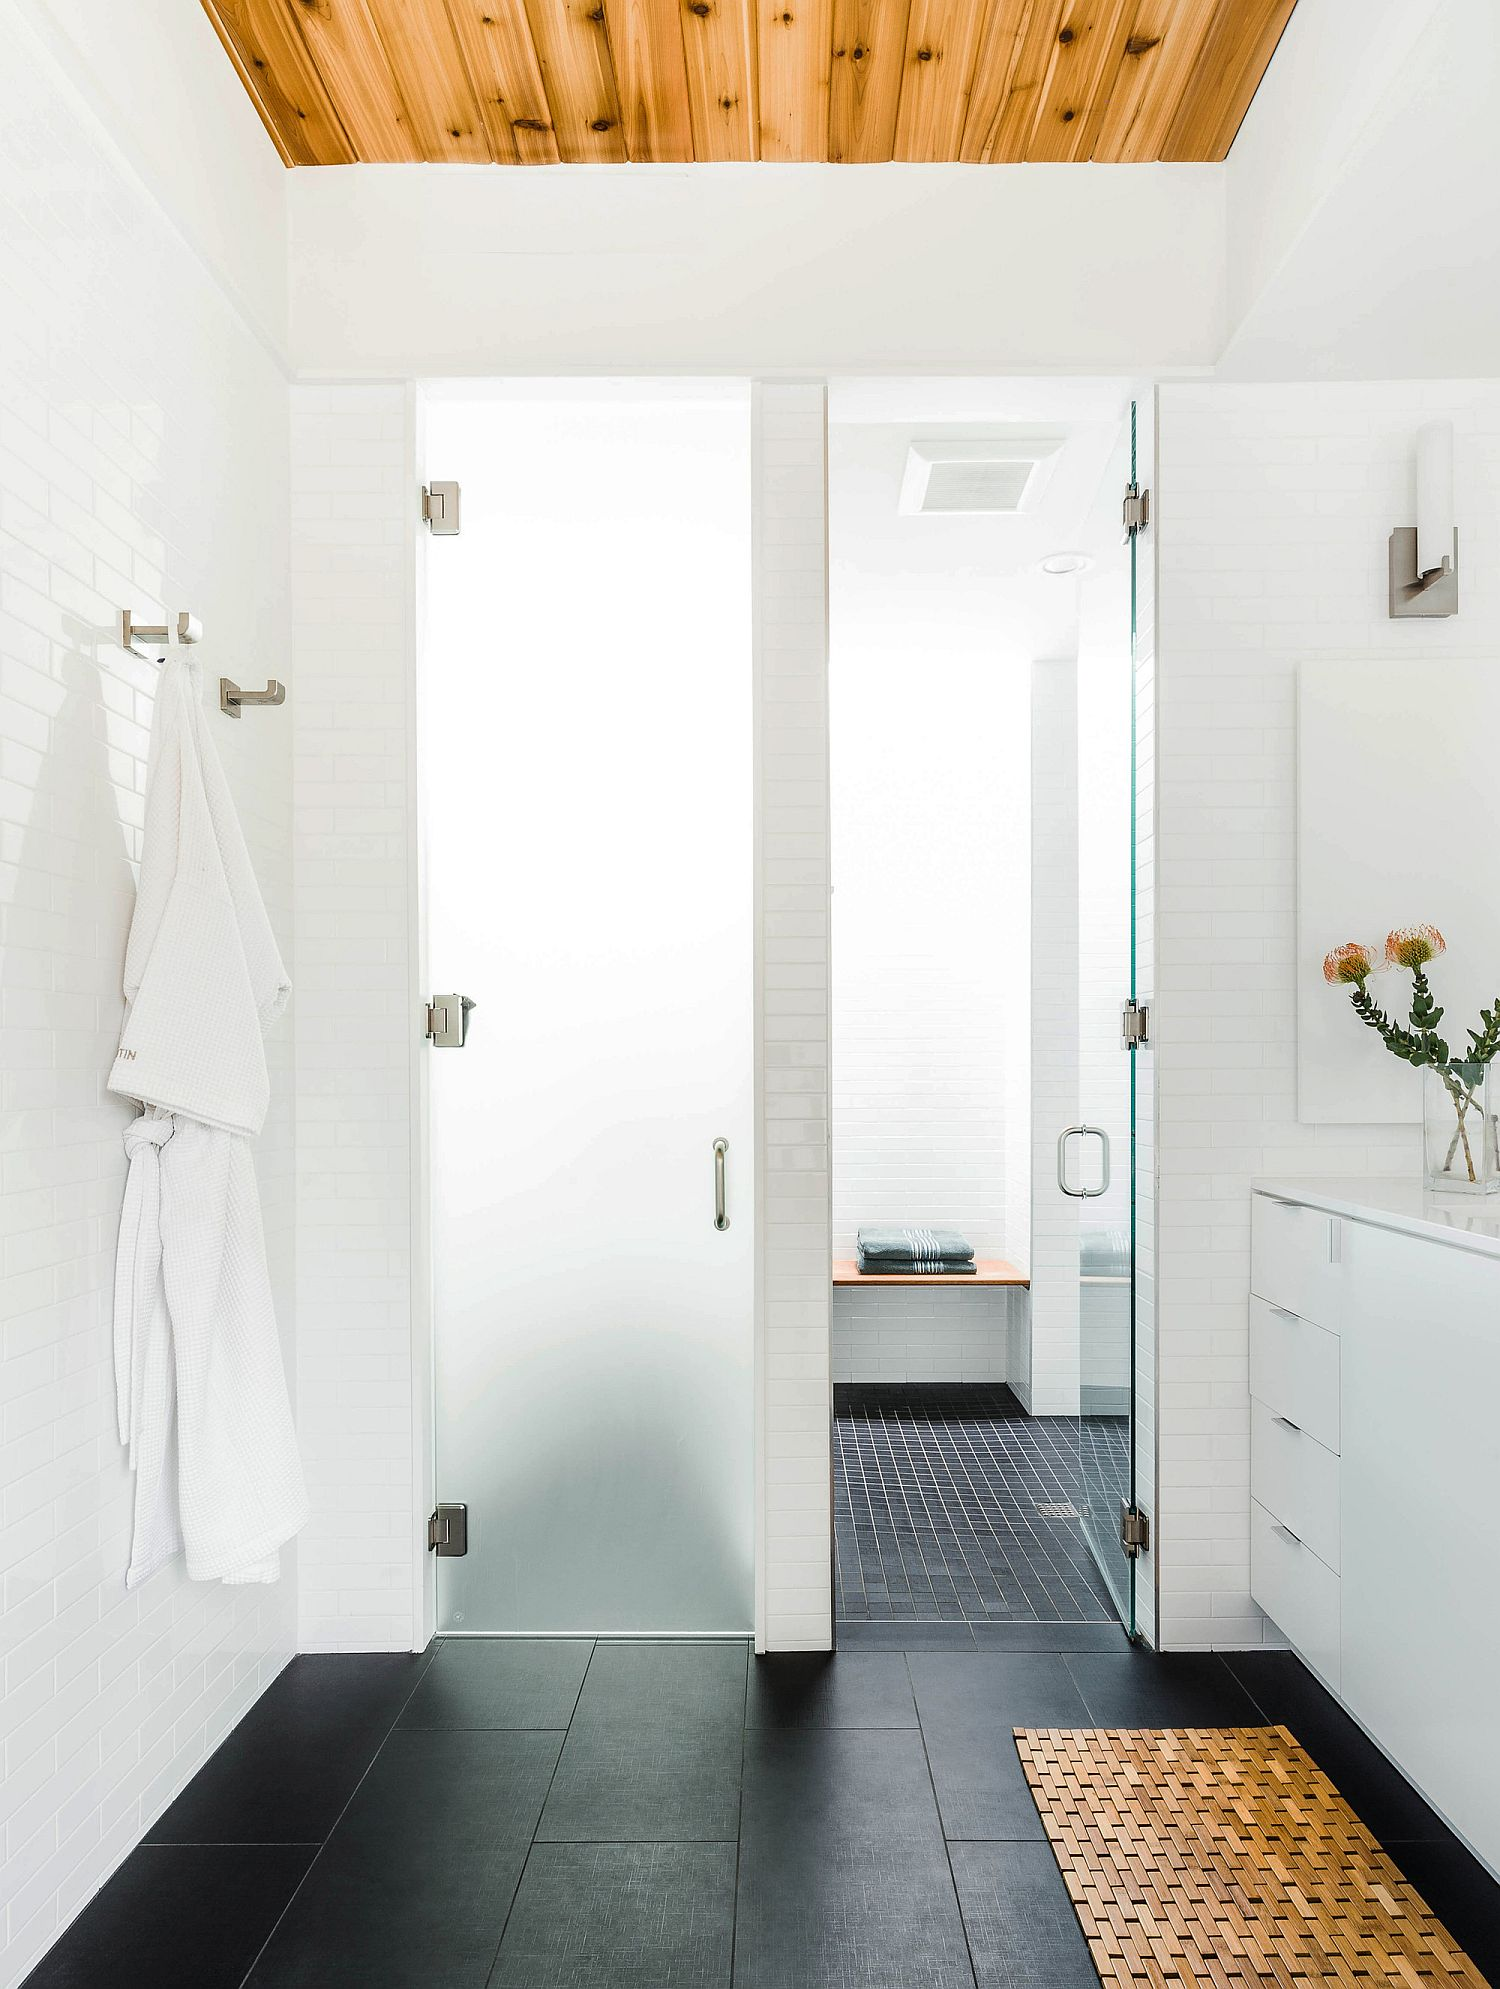 Gorgeous and relaxing bathroom in white with dark floor and wood ceiling